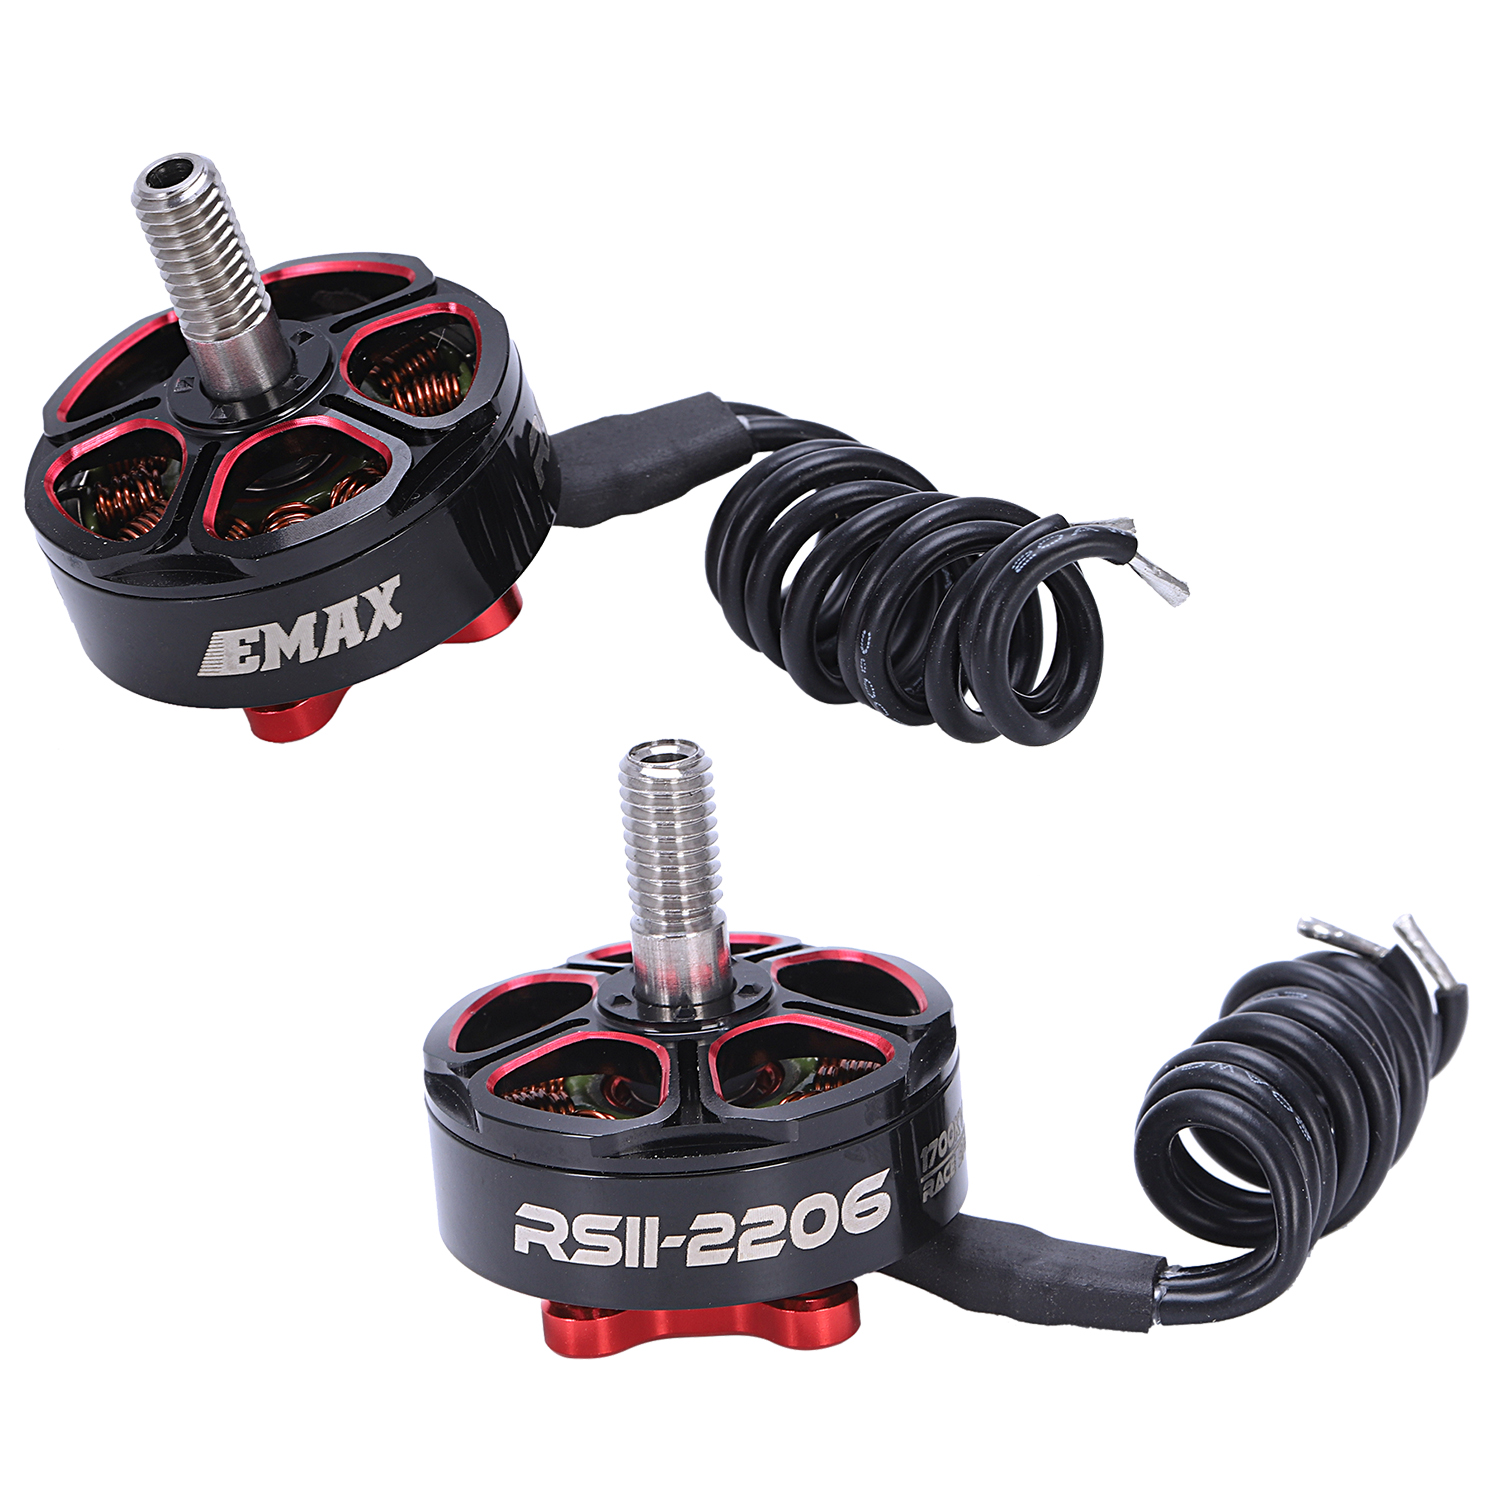 EMAX 4set/lot RSII 2206 Motor CW CCW for FPV RACER Quadcopter Quadrocopter RC Drone Aircraft